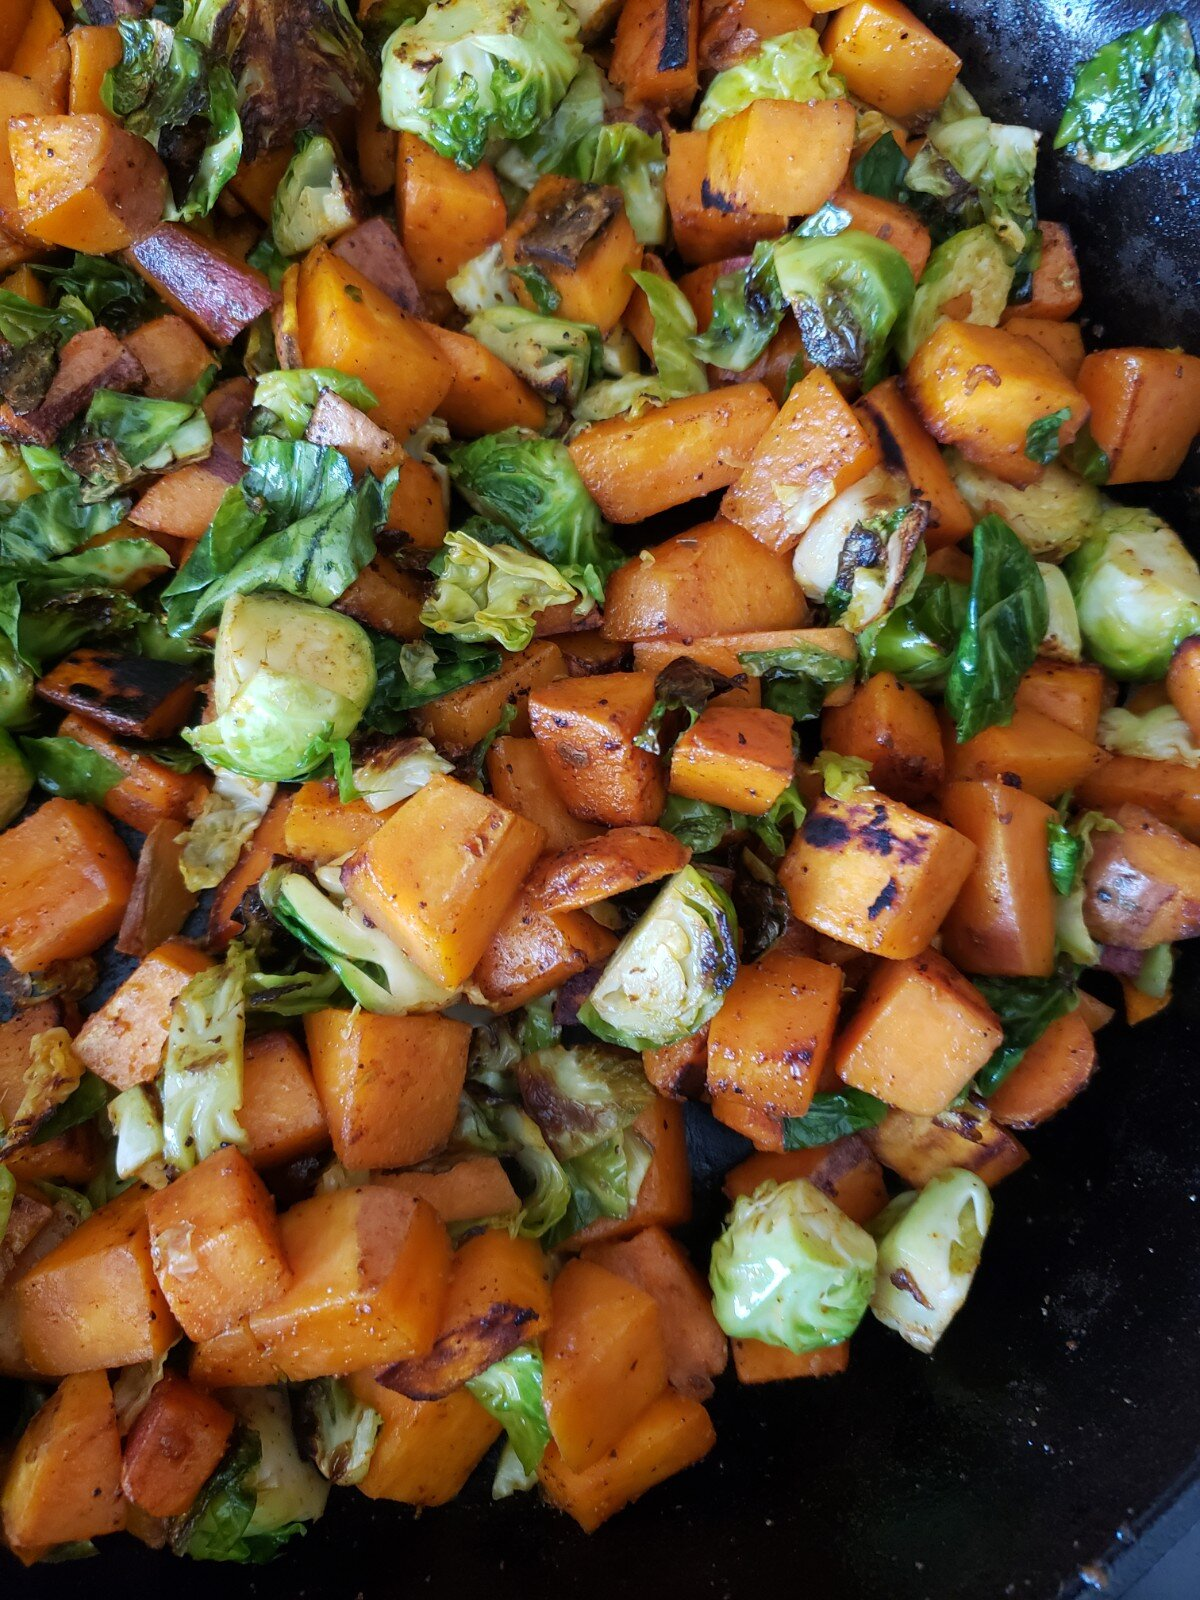 Sweet potatoes and brussel sprouts are the power couple this time of year. When you add that smokey component to them it creates a burst of savory goodness. Your meat eaters won't be missing anything with this hash!